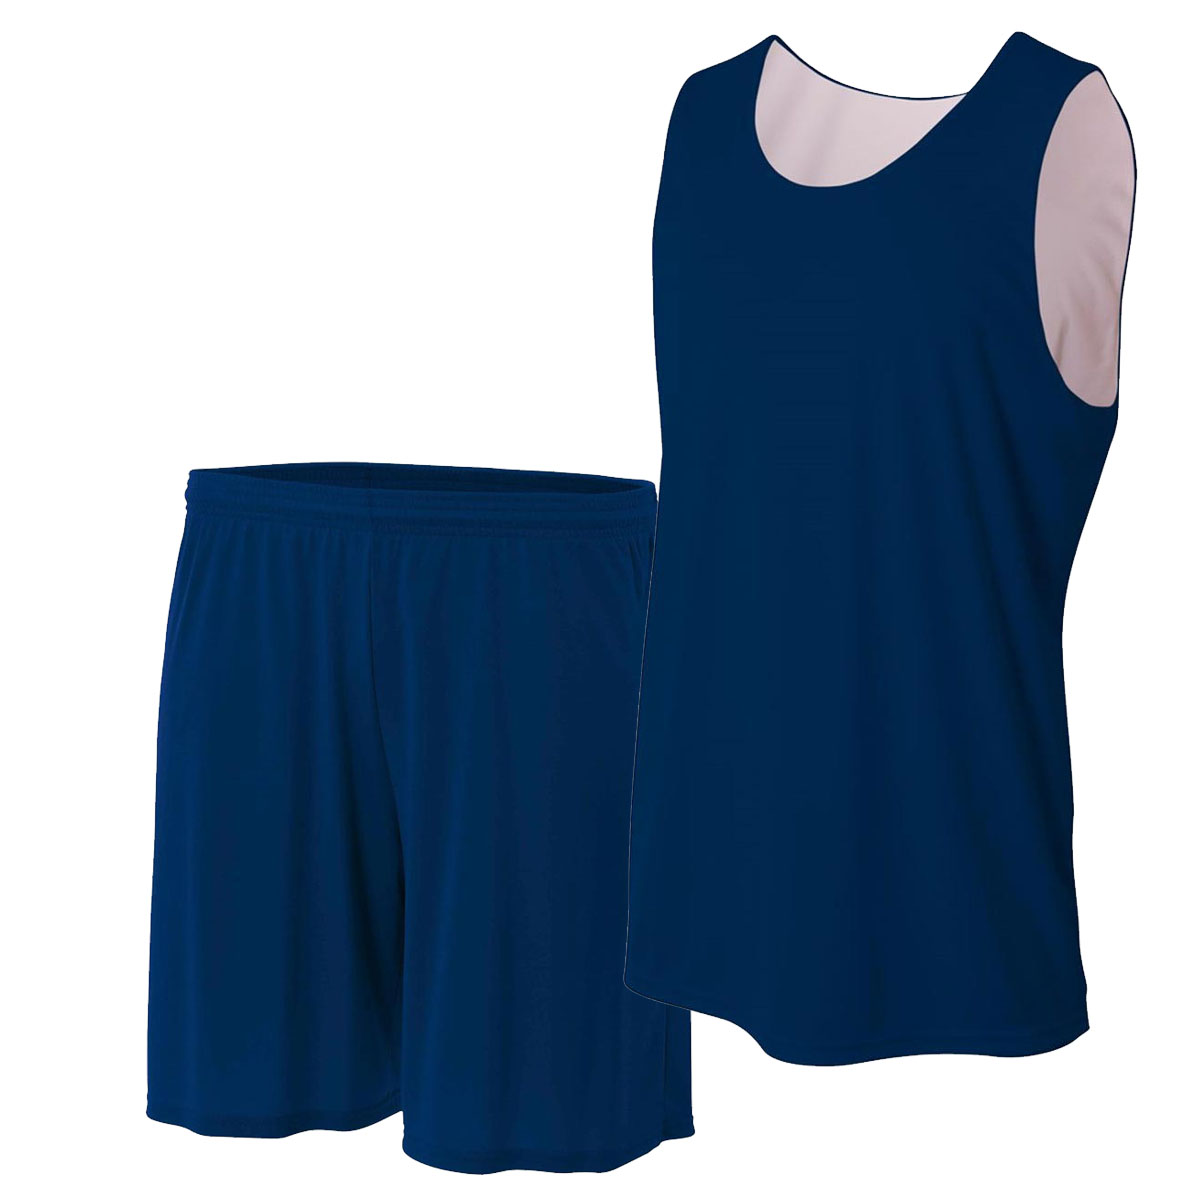 Reversible Basketball Uniforms Manufacturers in Patna